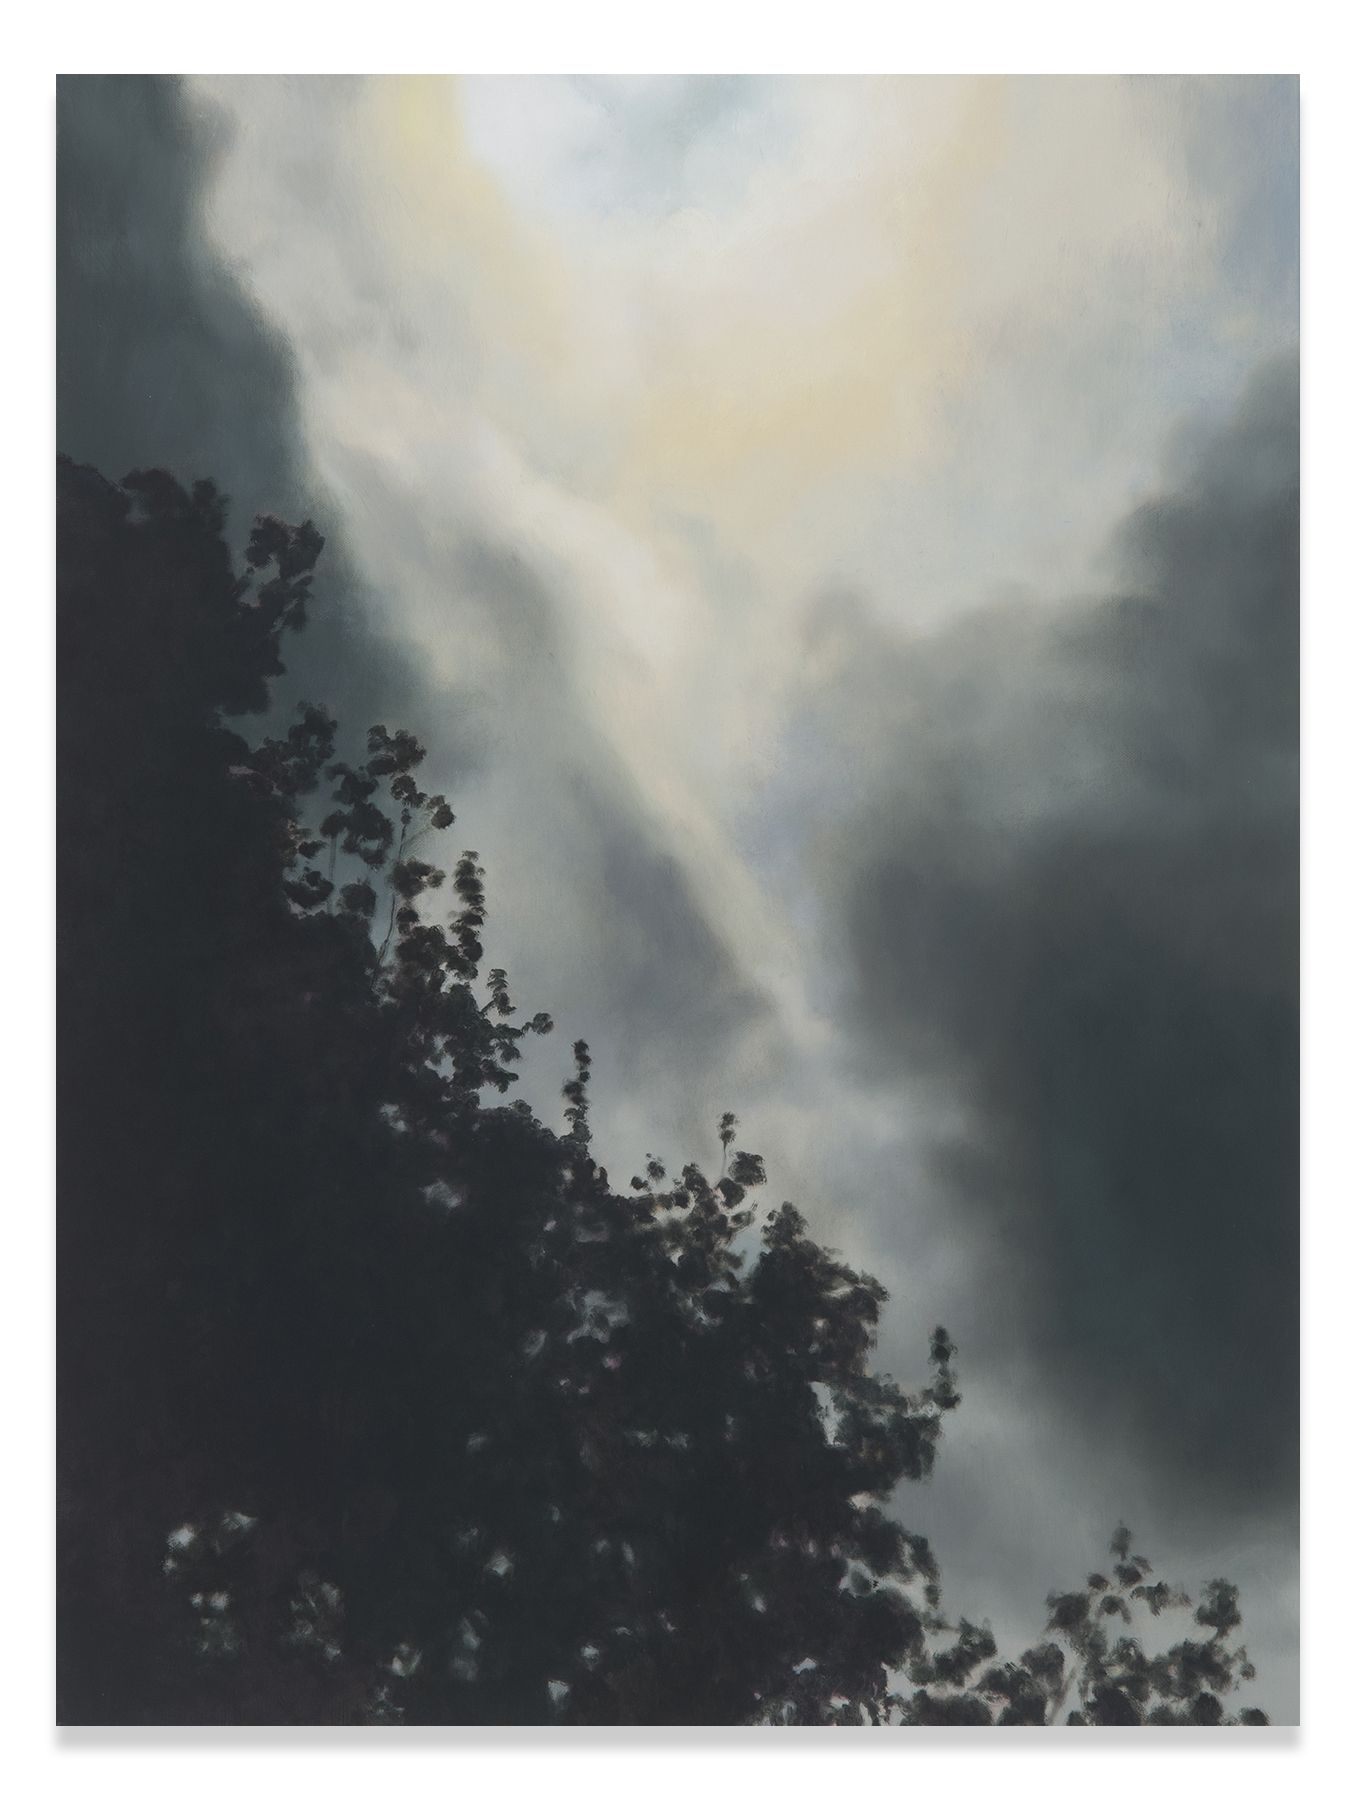 Creation Storm, 2017, Oil on linen, 32 x 24 inches, 81.3 x 61 cm, MMG#30412